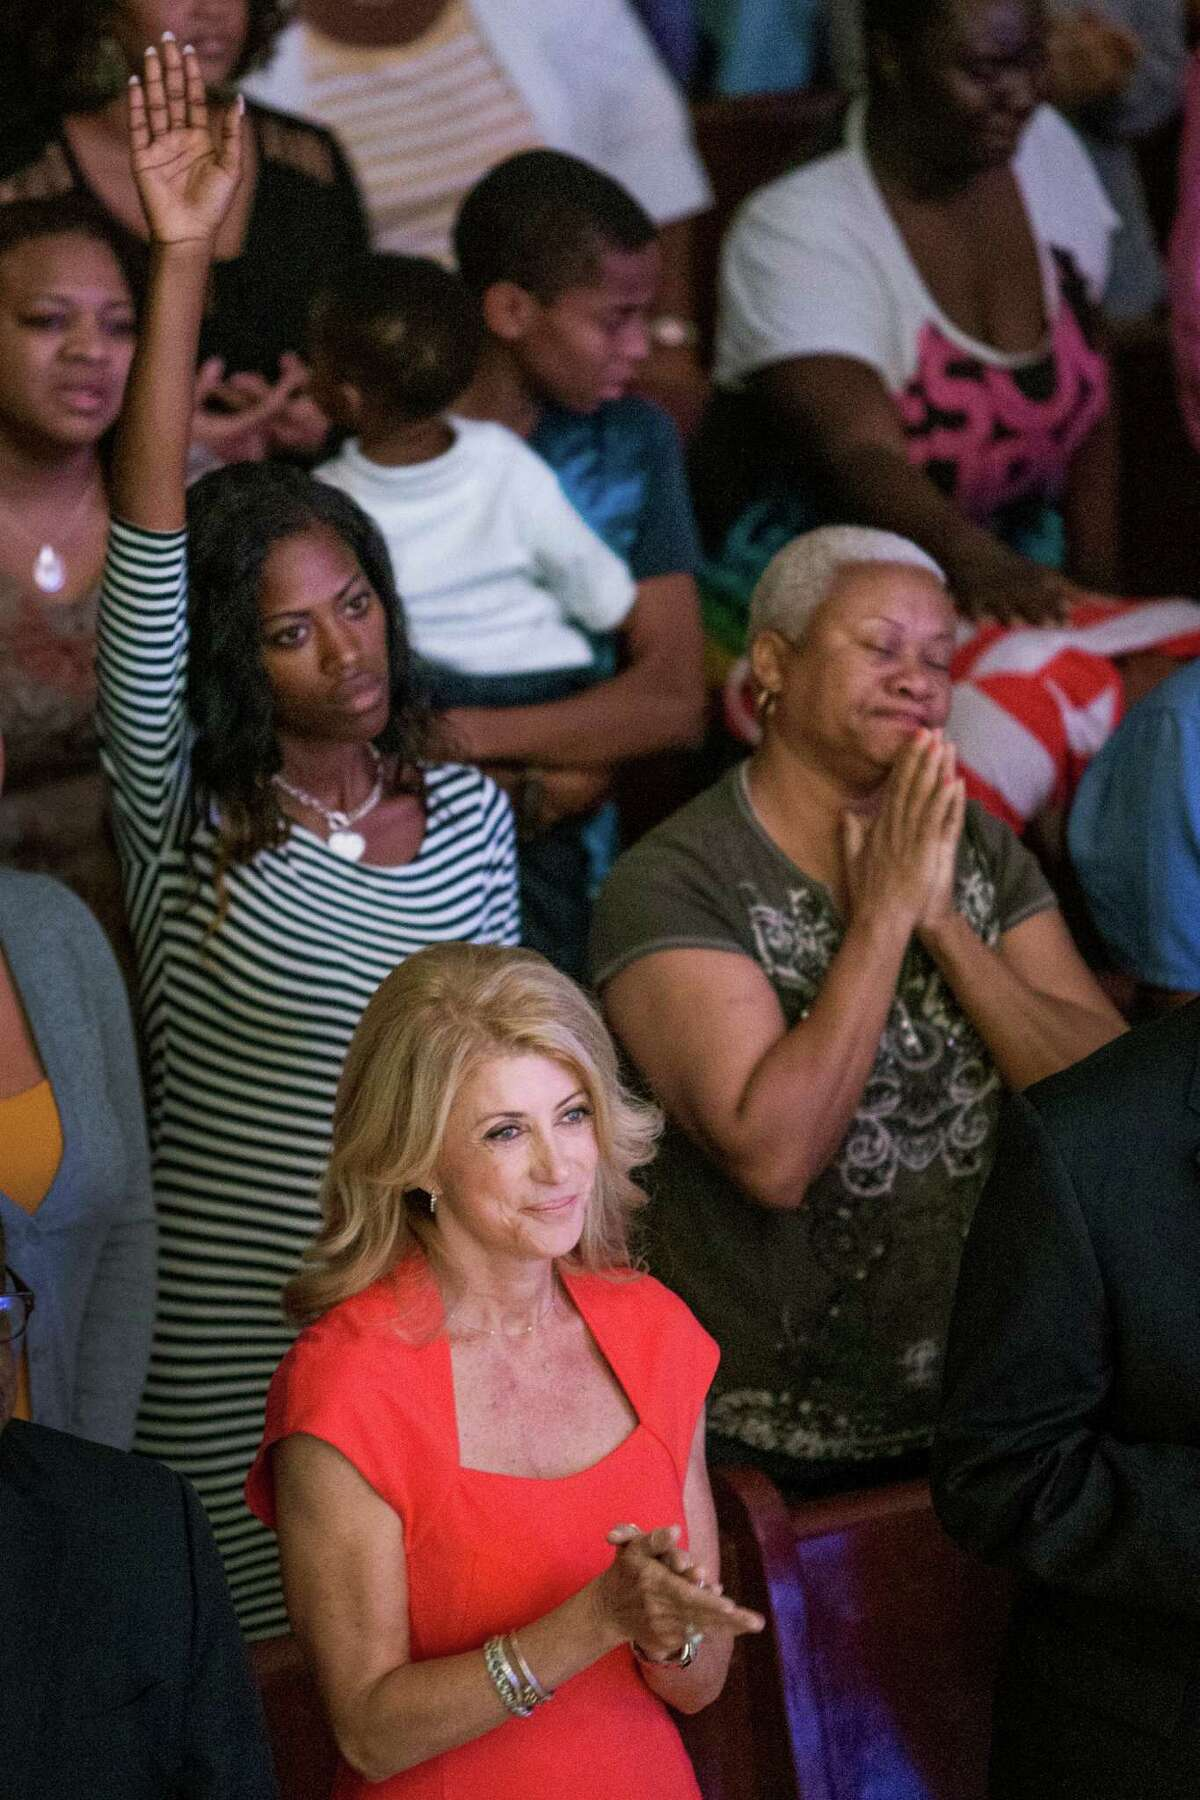 Gubernatorial candidate Wendy Davis on Sunday visited churches that included St. Johns United Methodist and Community of Faith. Expected to lose by as many as 15 points, she hopes encouraging her base to vote early will aid her campaign.